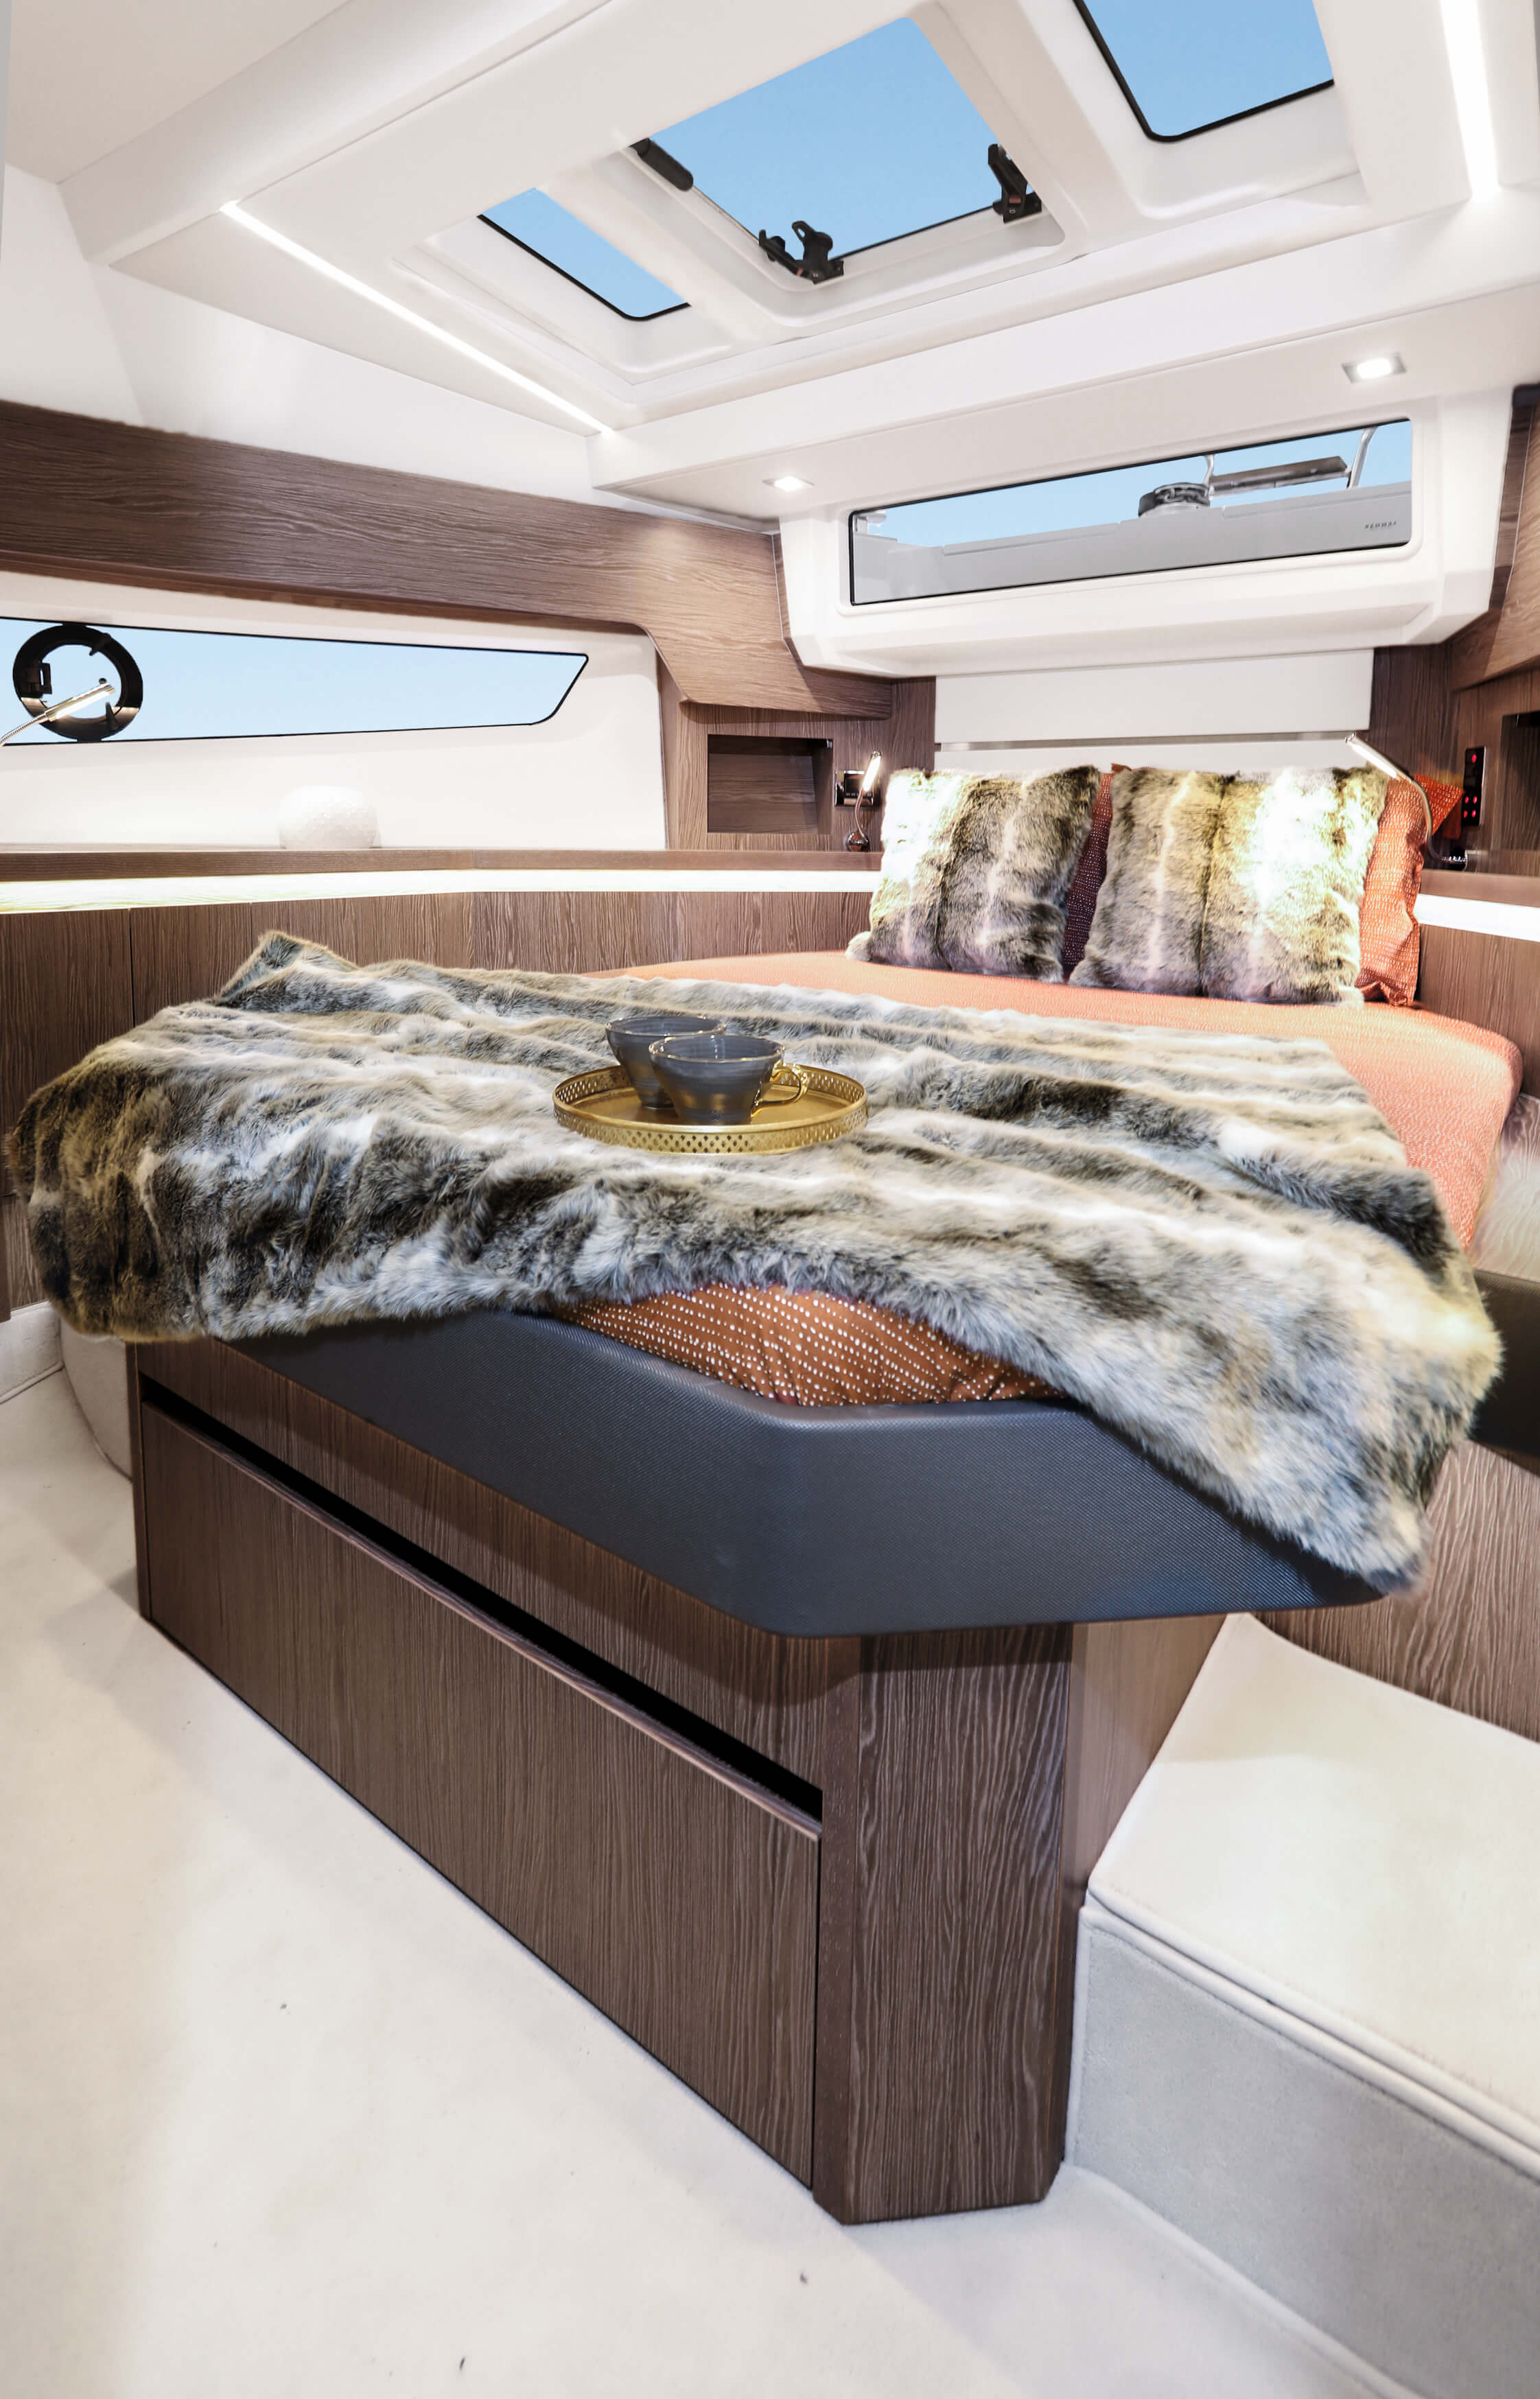 Sealine F430 Iç mekan görünümü | VIP cabin with double berth, 2 wardrobes and sideboards with stowage and two bedside tables. 1 drawer underneath the bed. 3 Skylights, one openable. | Sealine